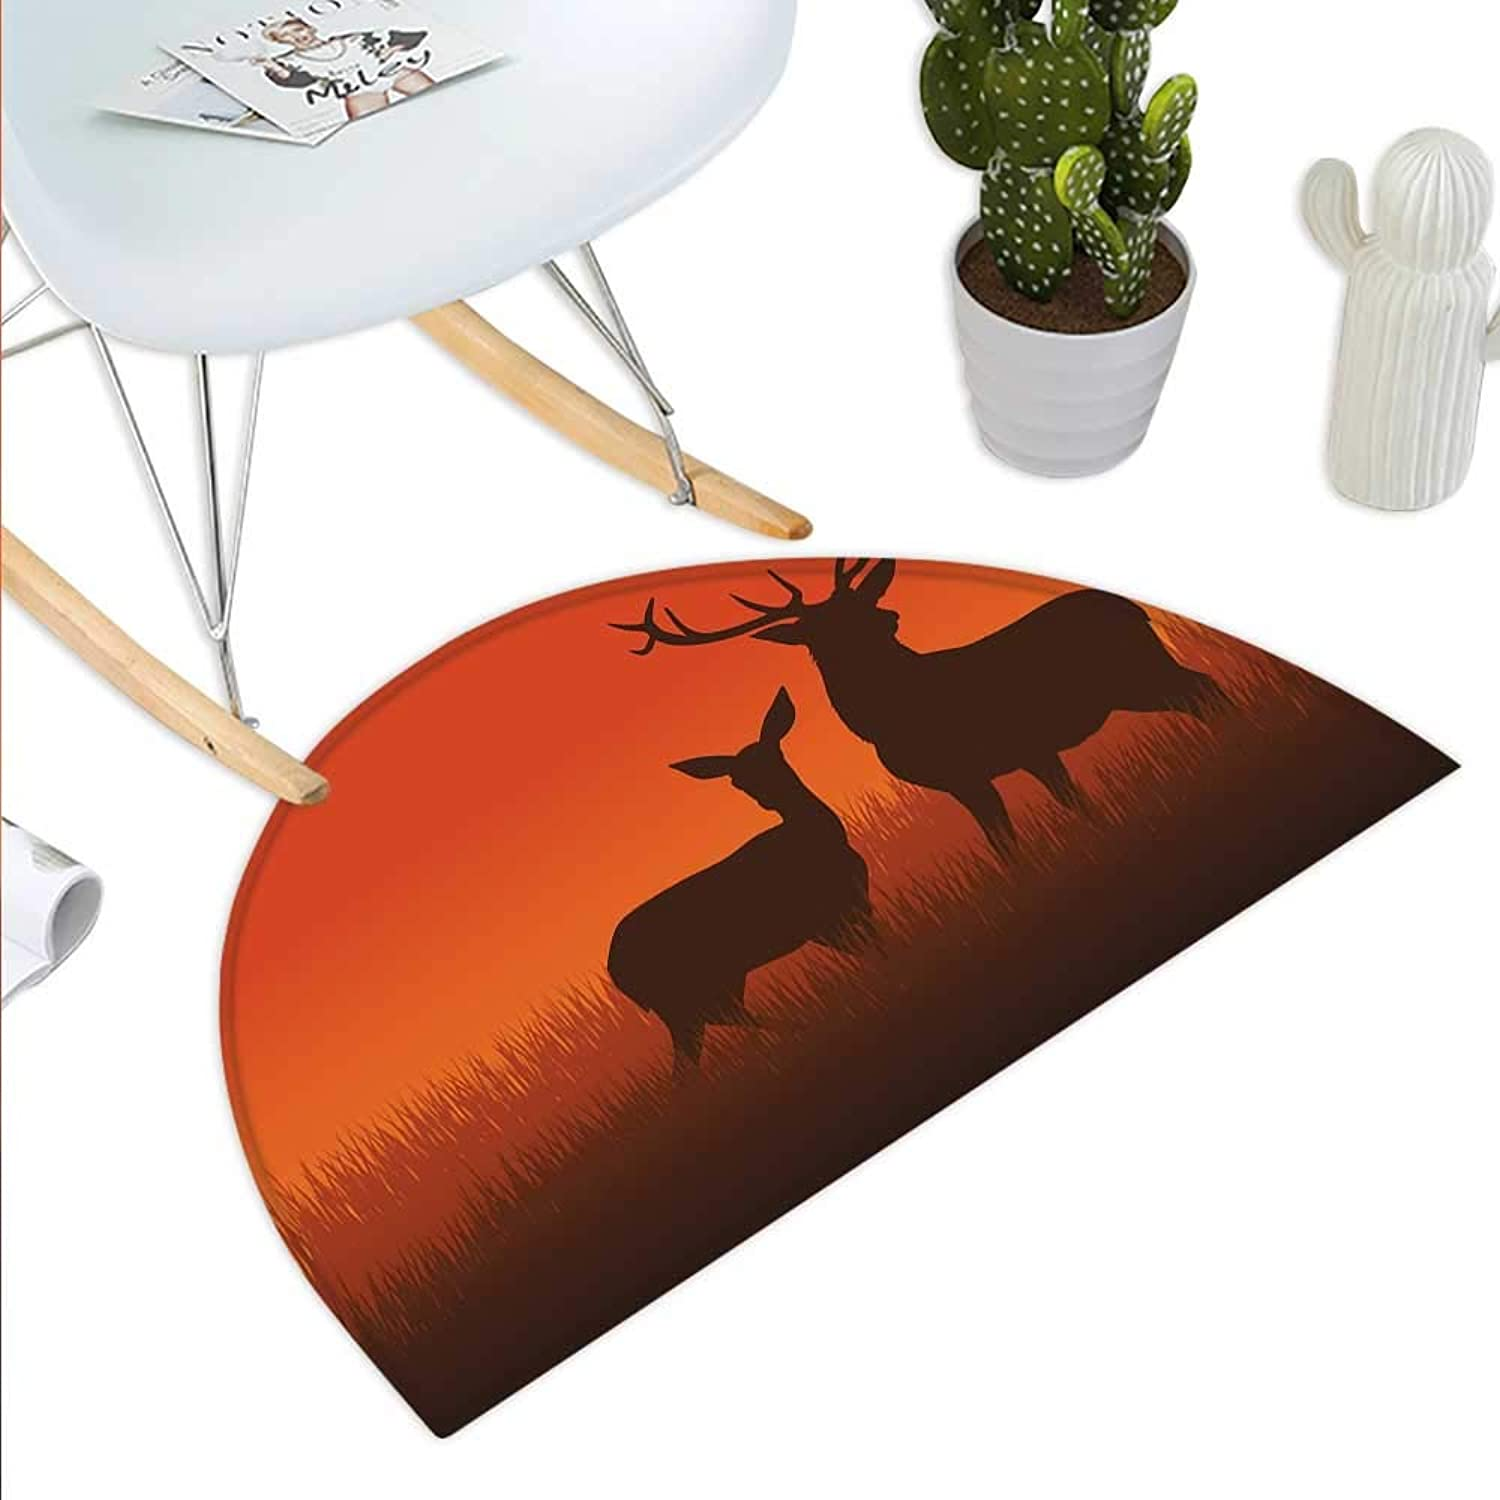 Hunting Decor Semicircle Doormat Silhouette Illustration of a Deer and Doe on Meadow Autumn Season Skyline Halfmoon doormats H 35.4  xD 53.1  Multicolor